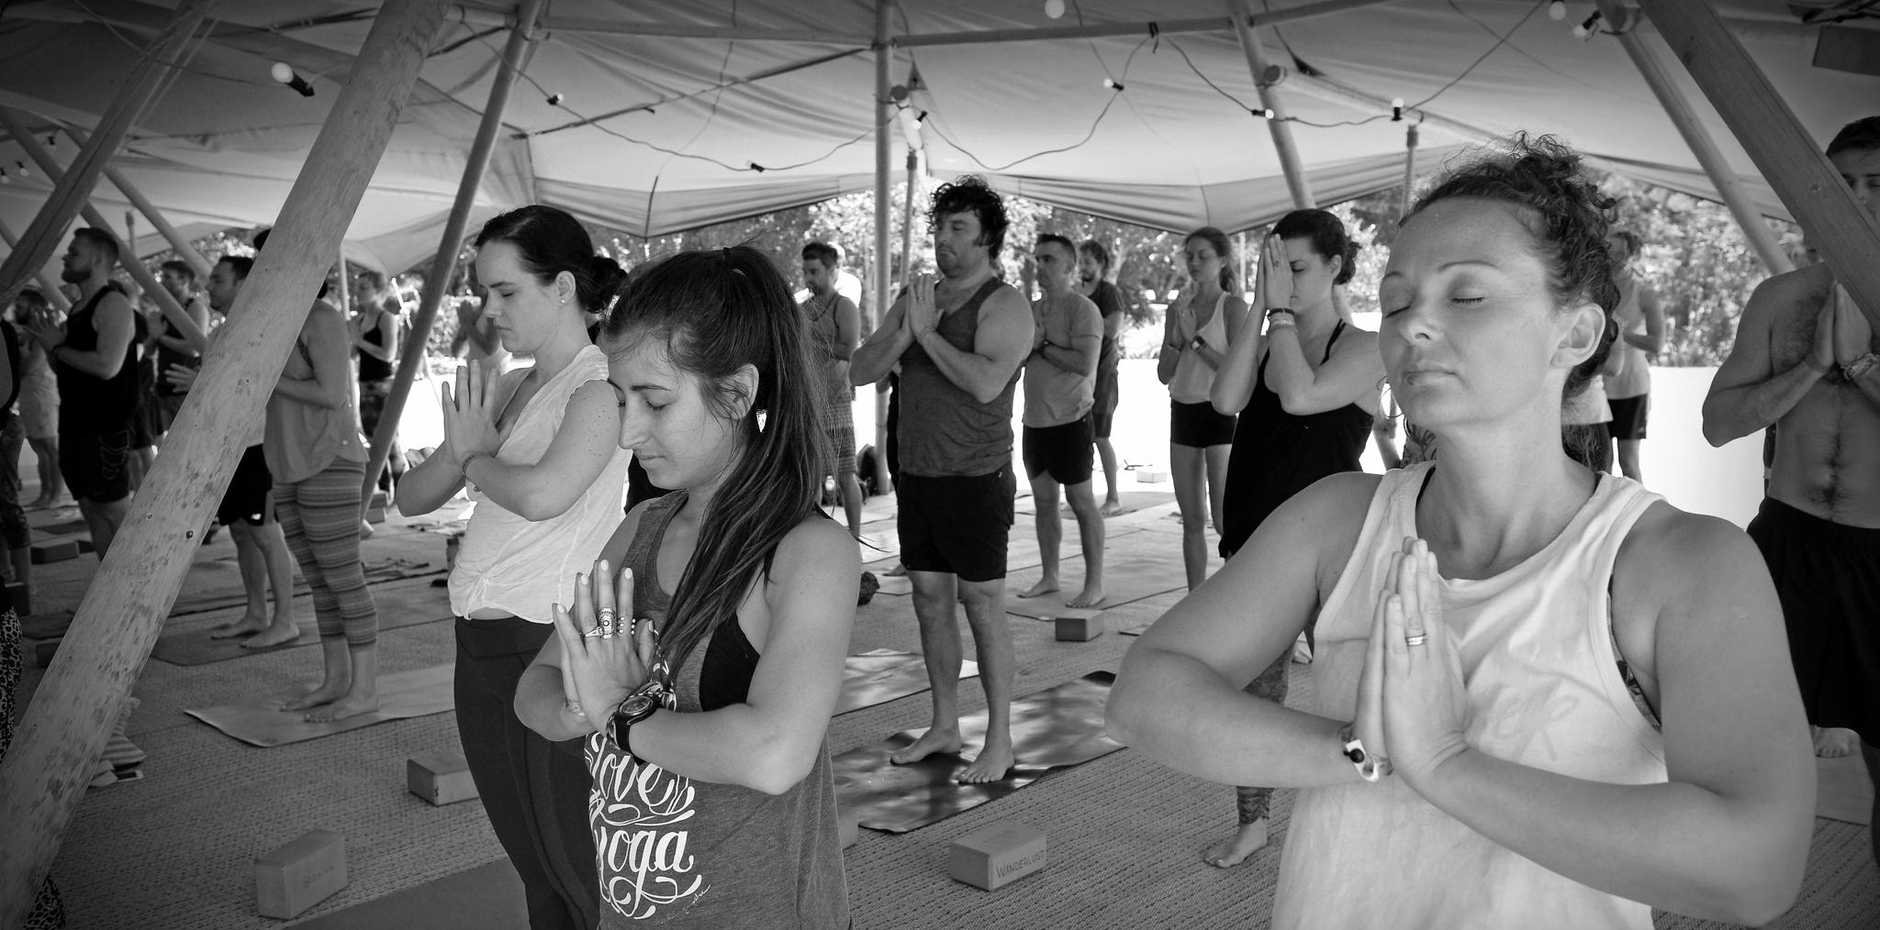 WANDERING SOULS: Visitors try yoga at Wanderlust at Novotel Twin Waters.